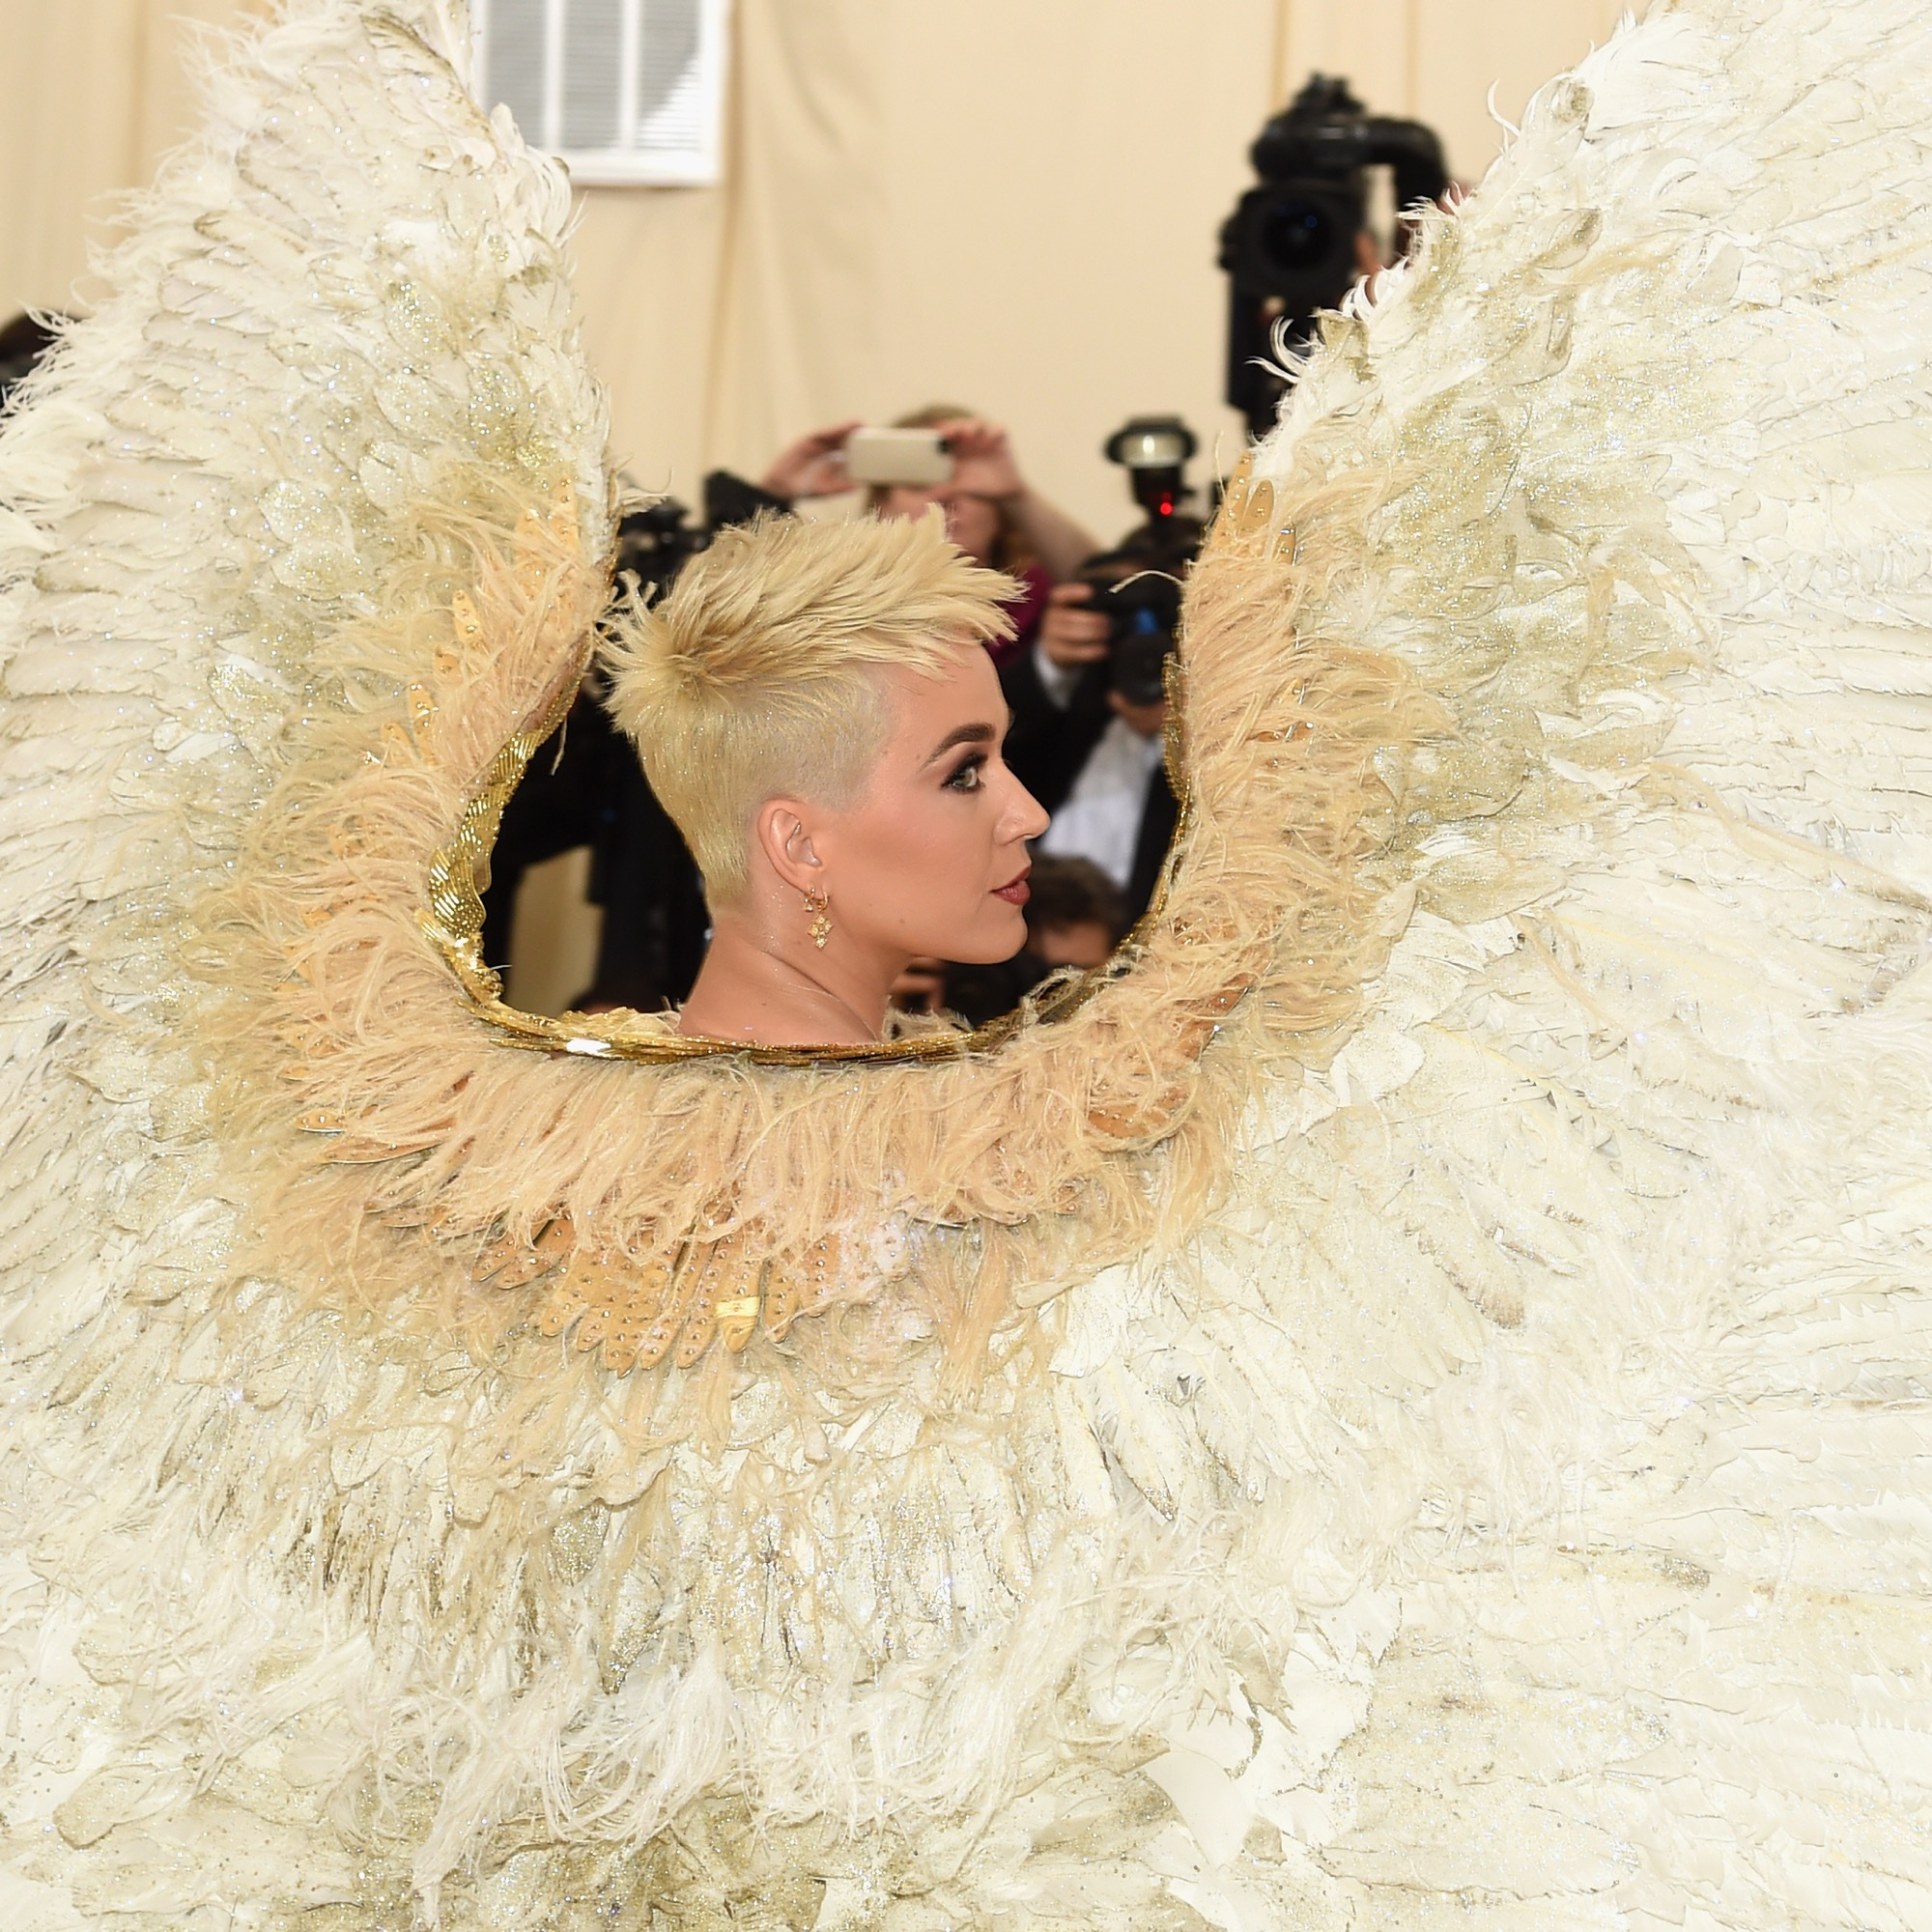 Katy Perry MET Gala wings